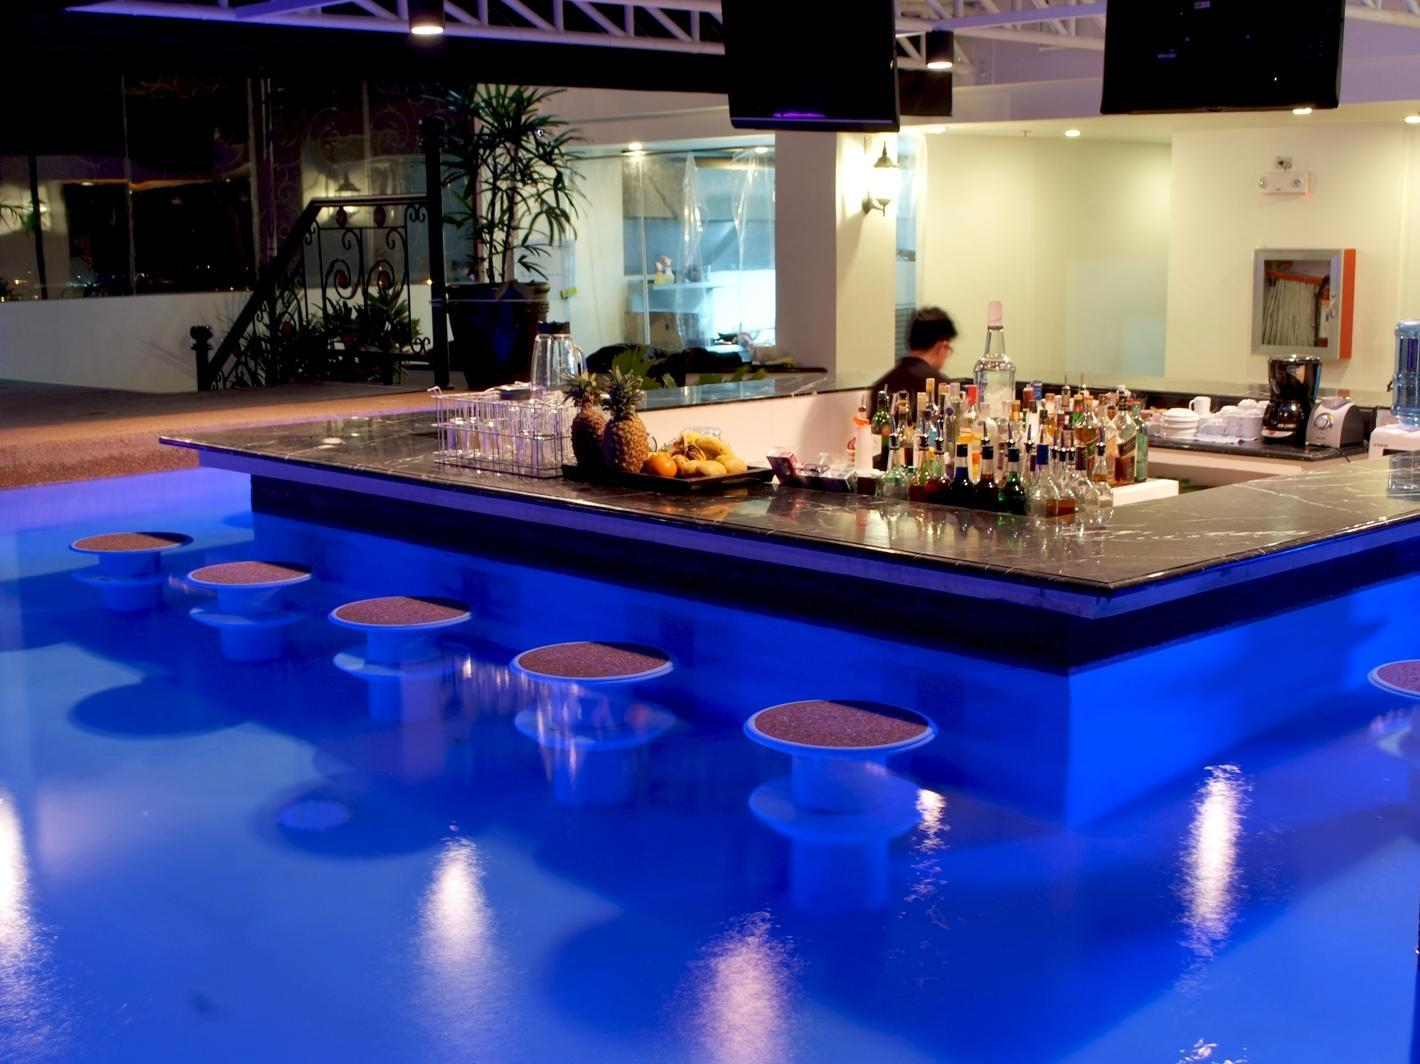 The Penthouse Hotel